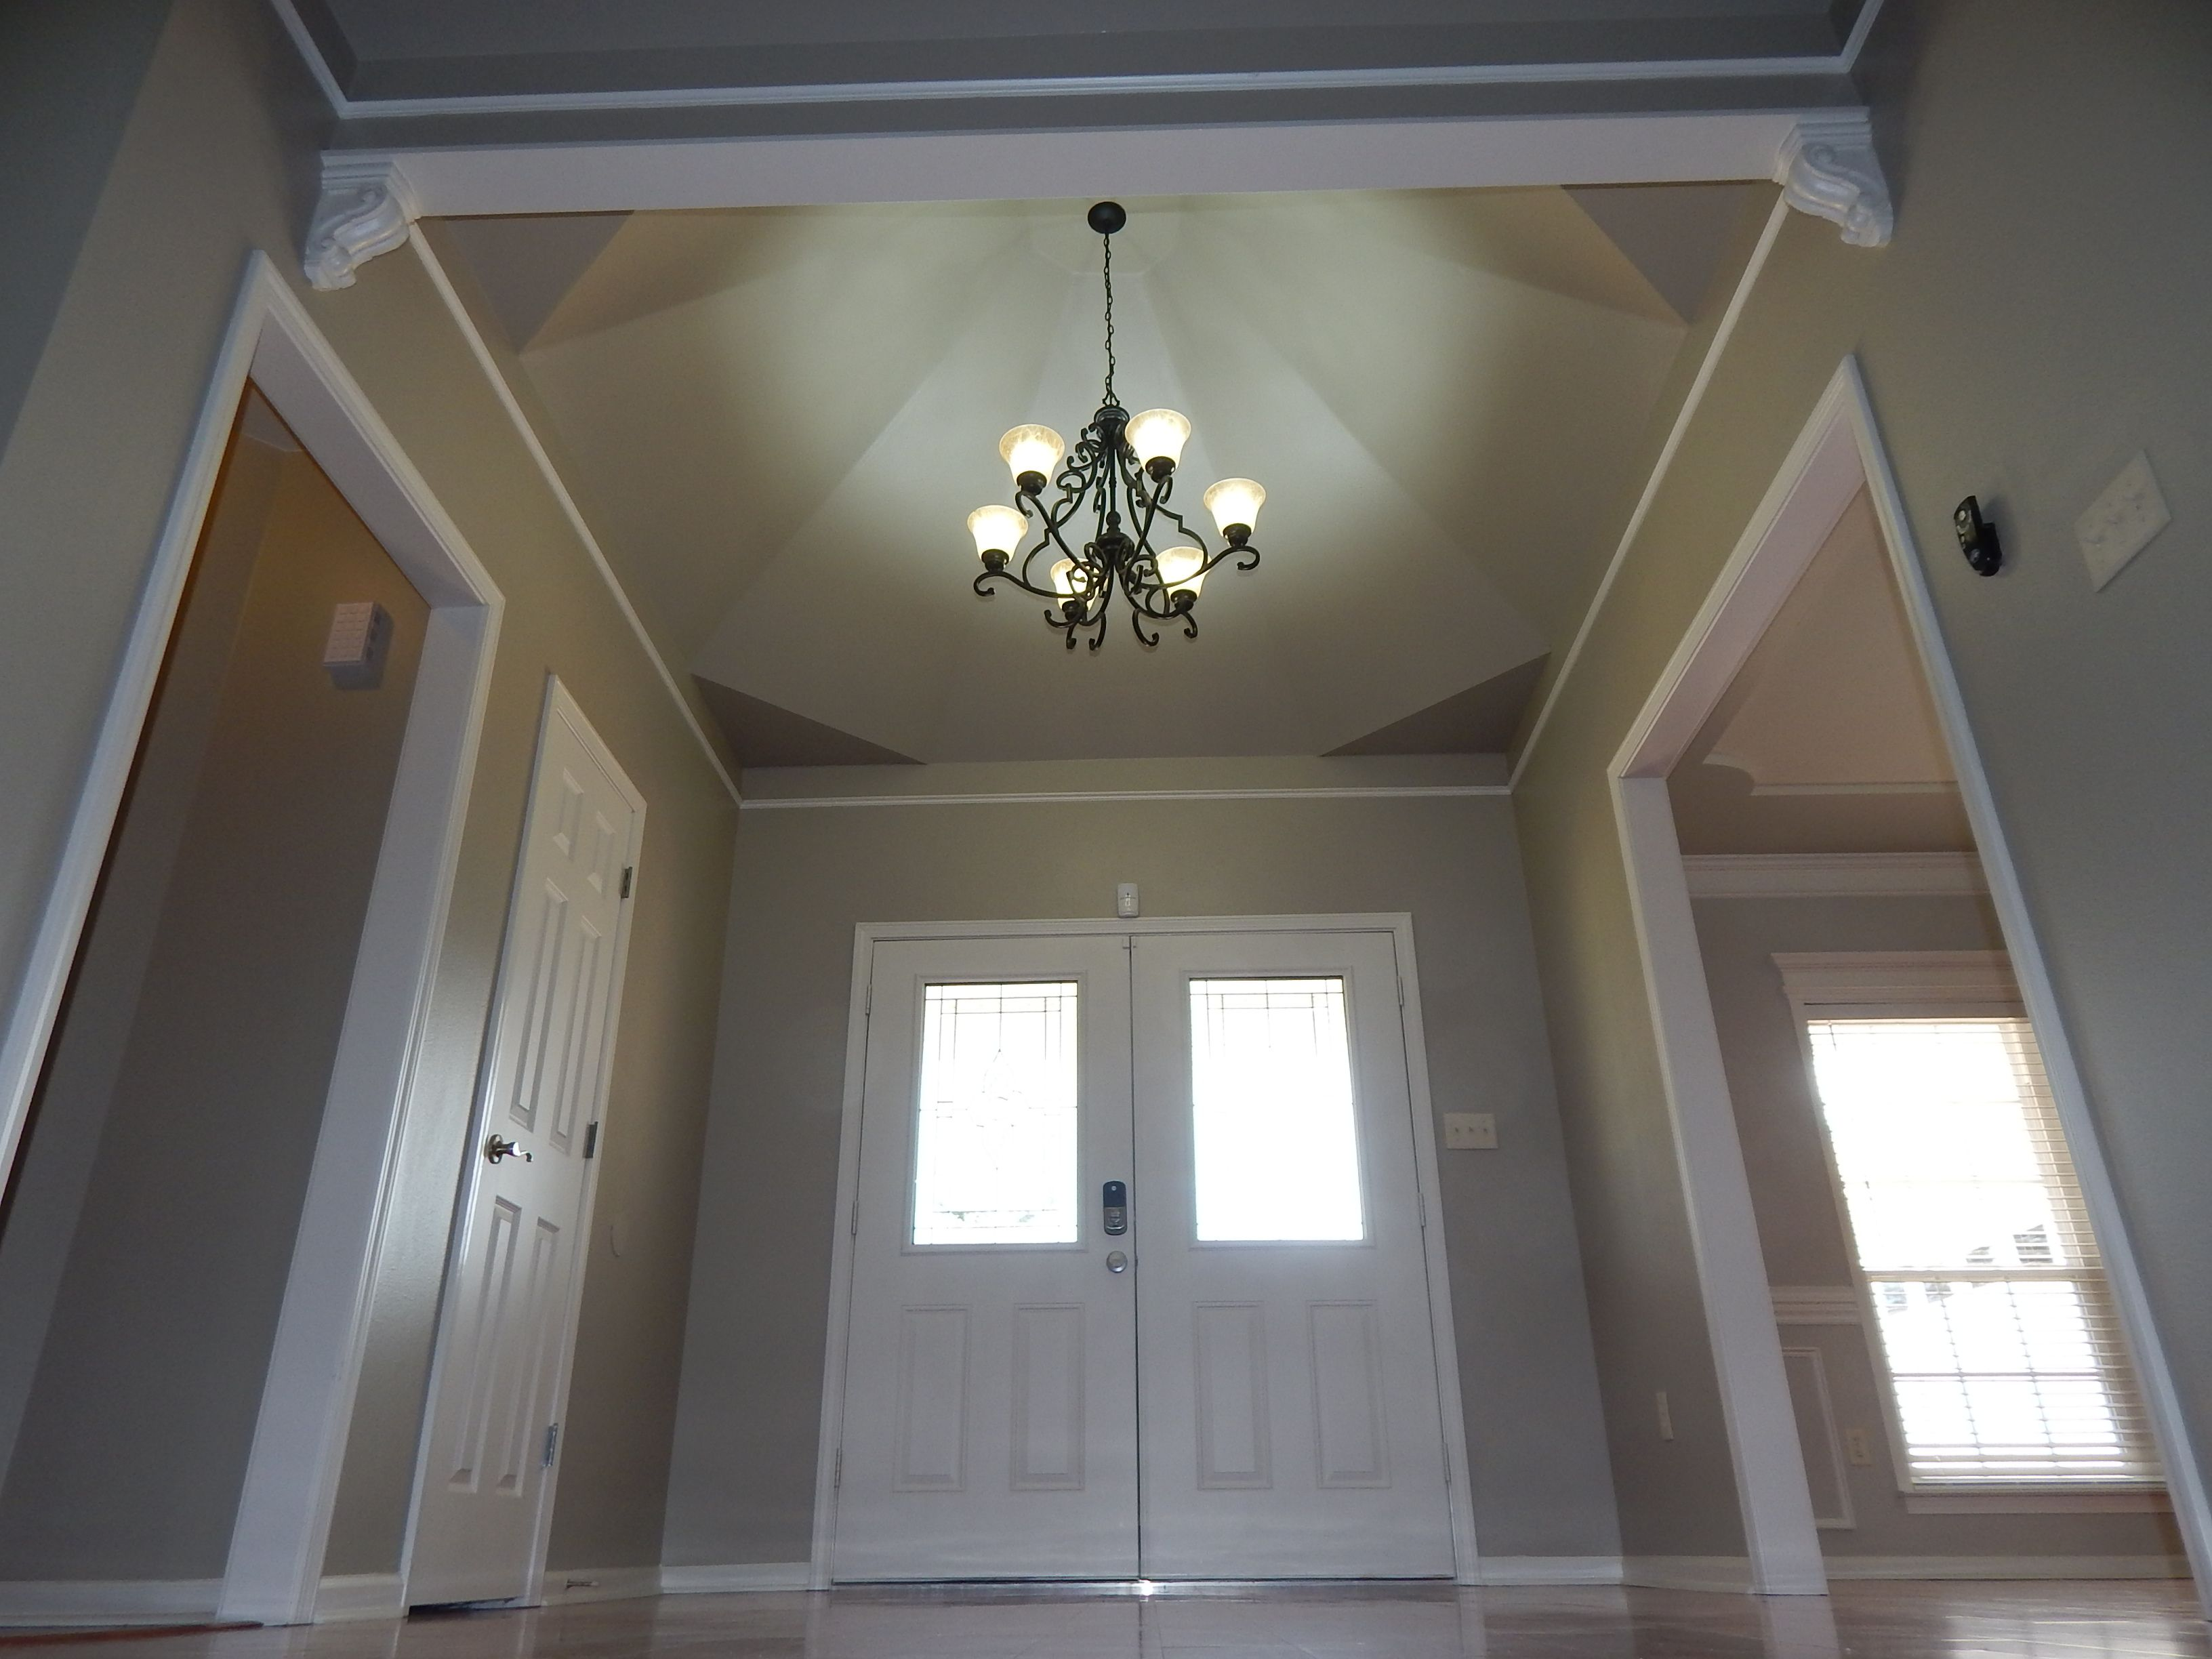 Walls: Sherwin Williams Amazing Gray Sw 7044 Trim: Sherwin